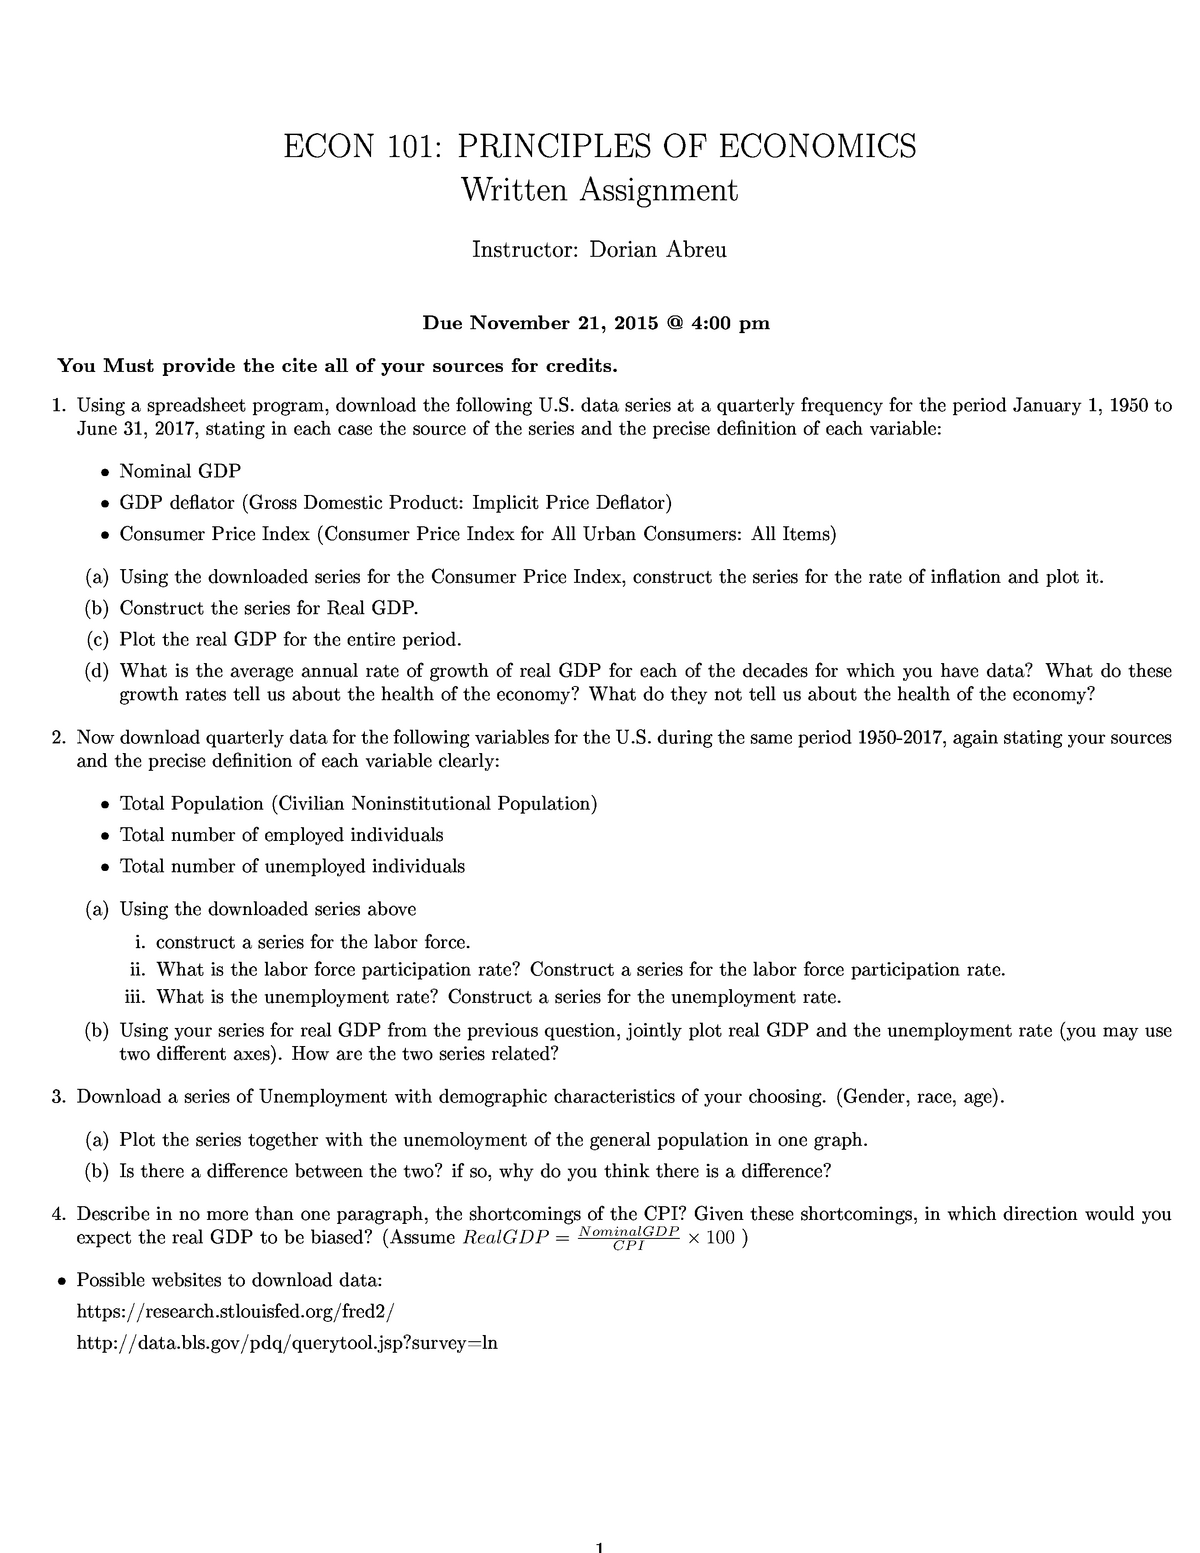 ECO 101 Written Assignment Fall 2017 - ECON 101